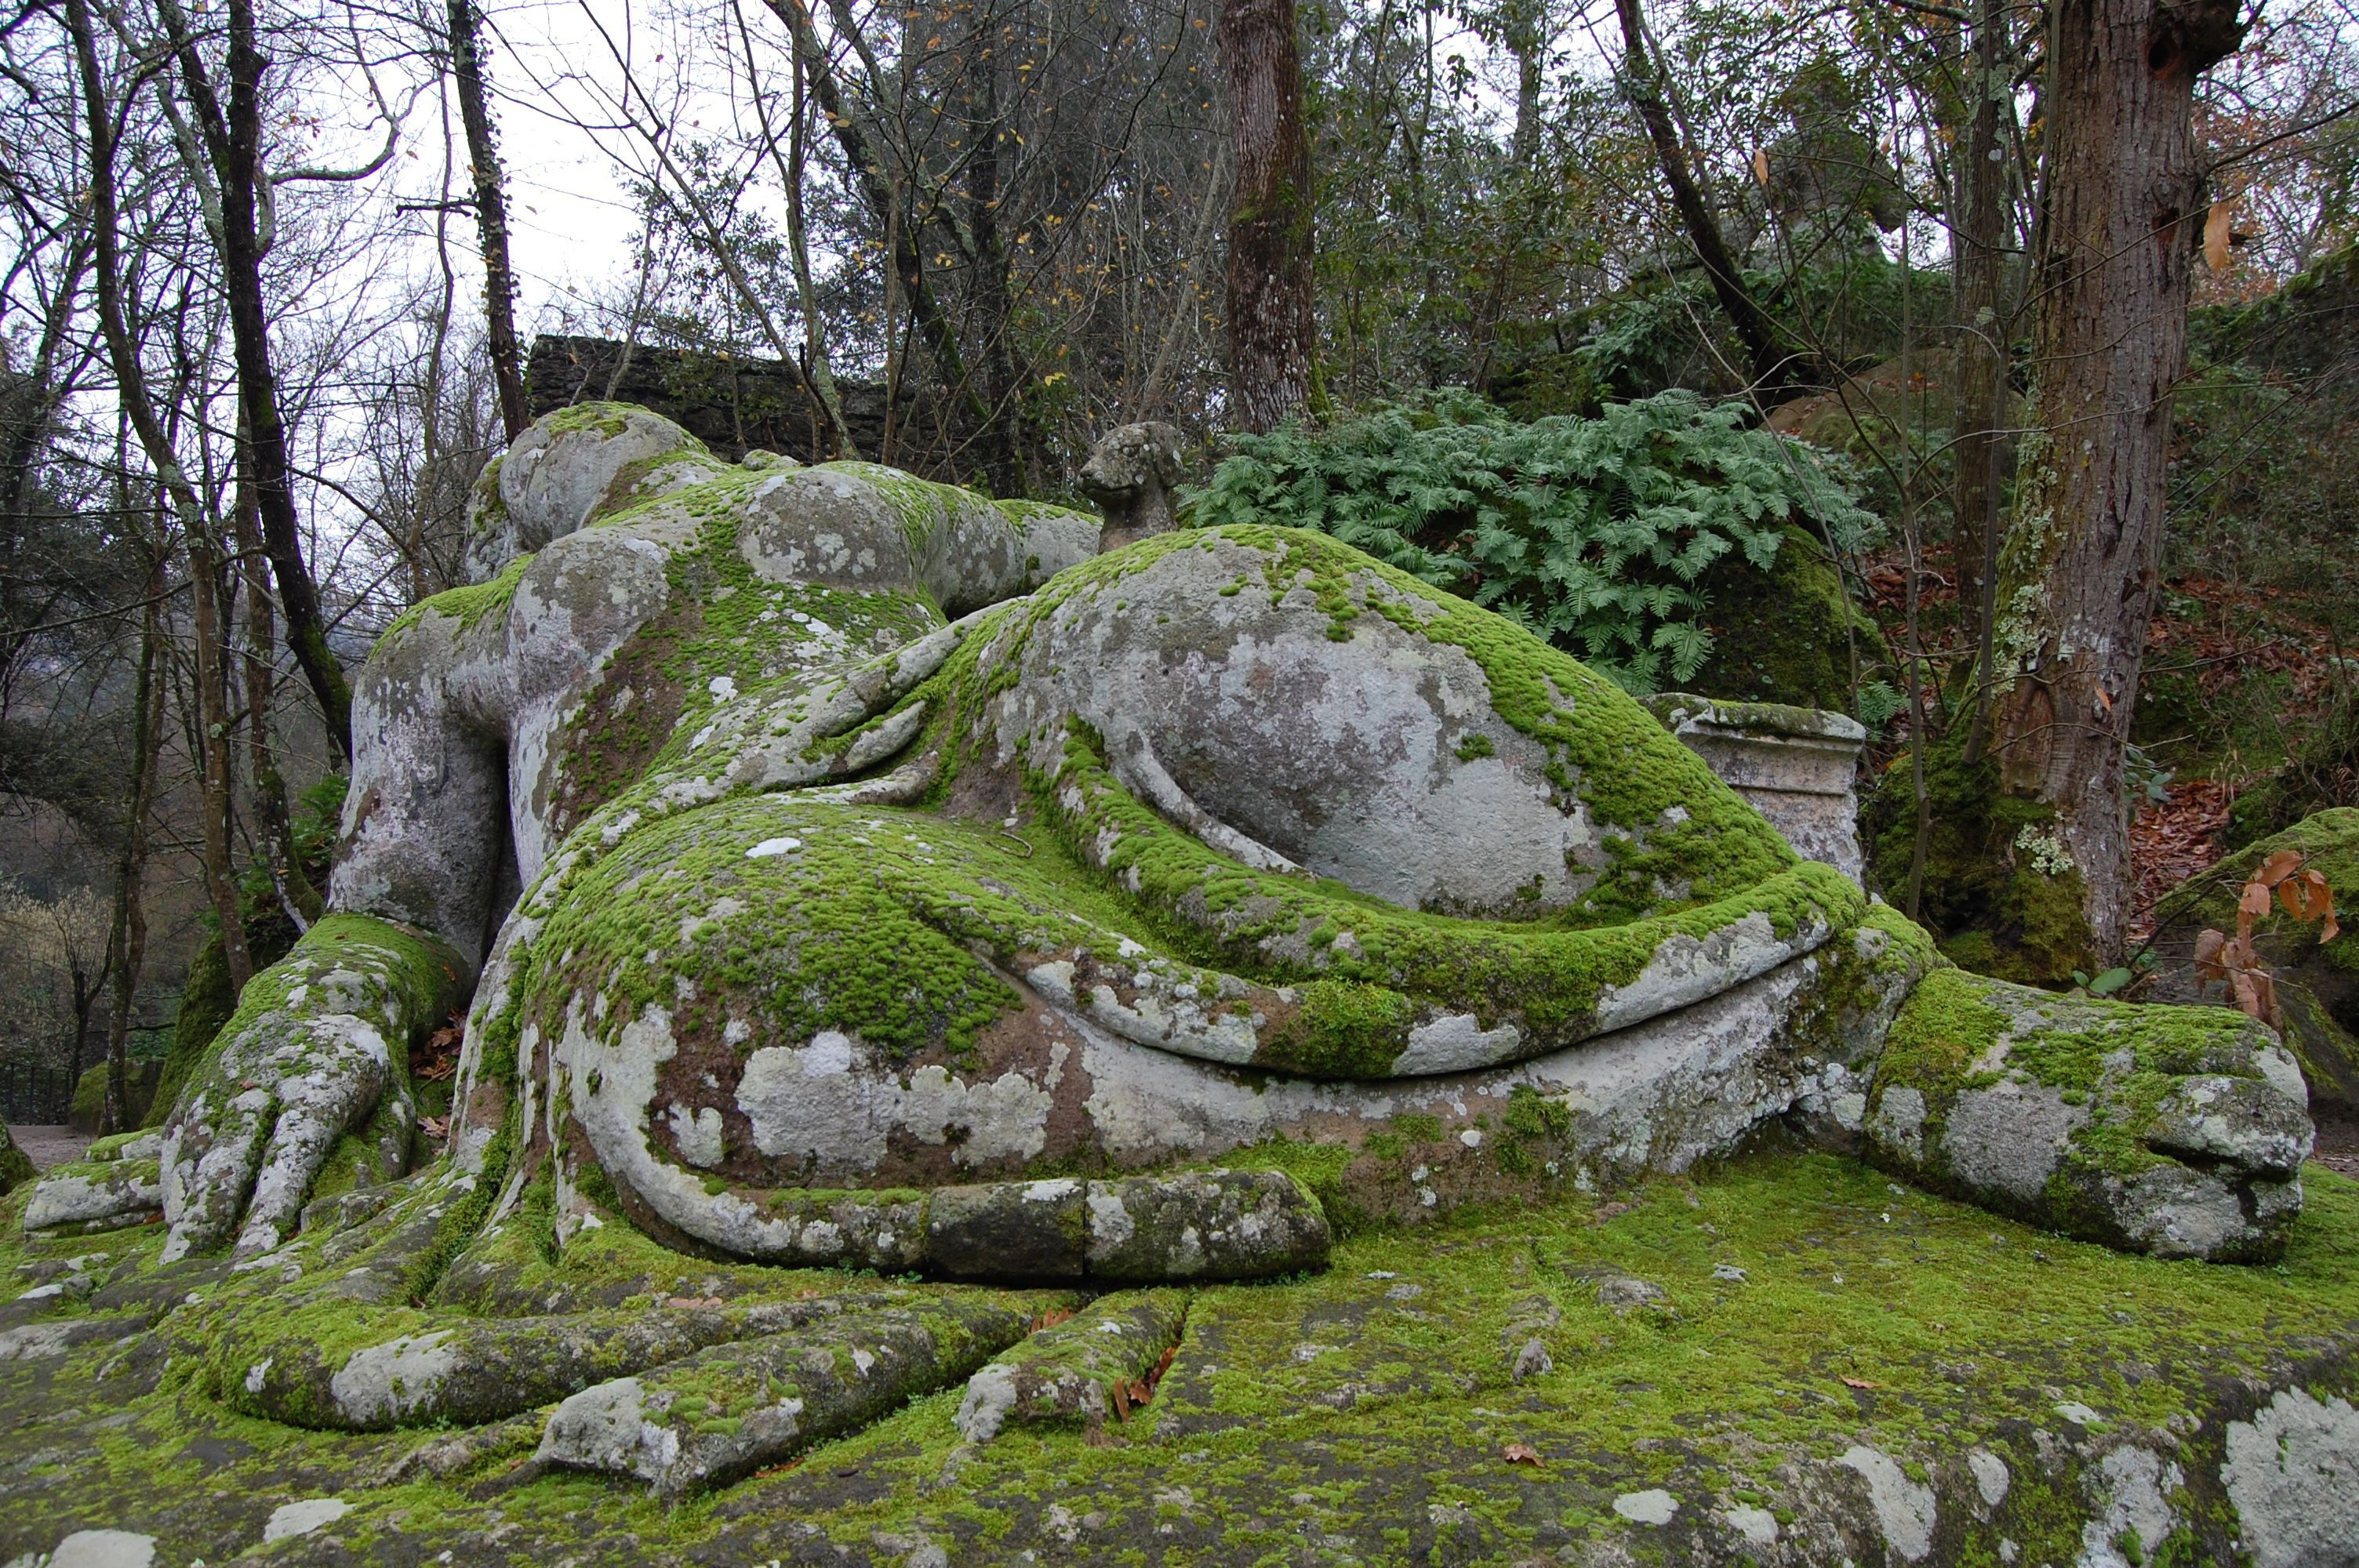 Monster World Garten Bomarzo Giardino Di Mostri Park Of Monsters Park Der